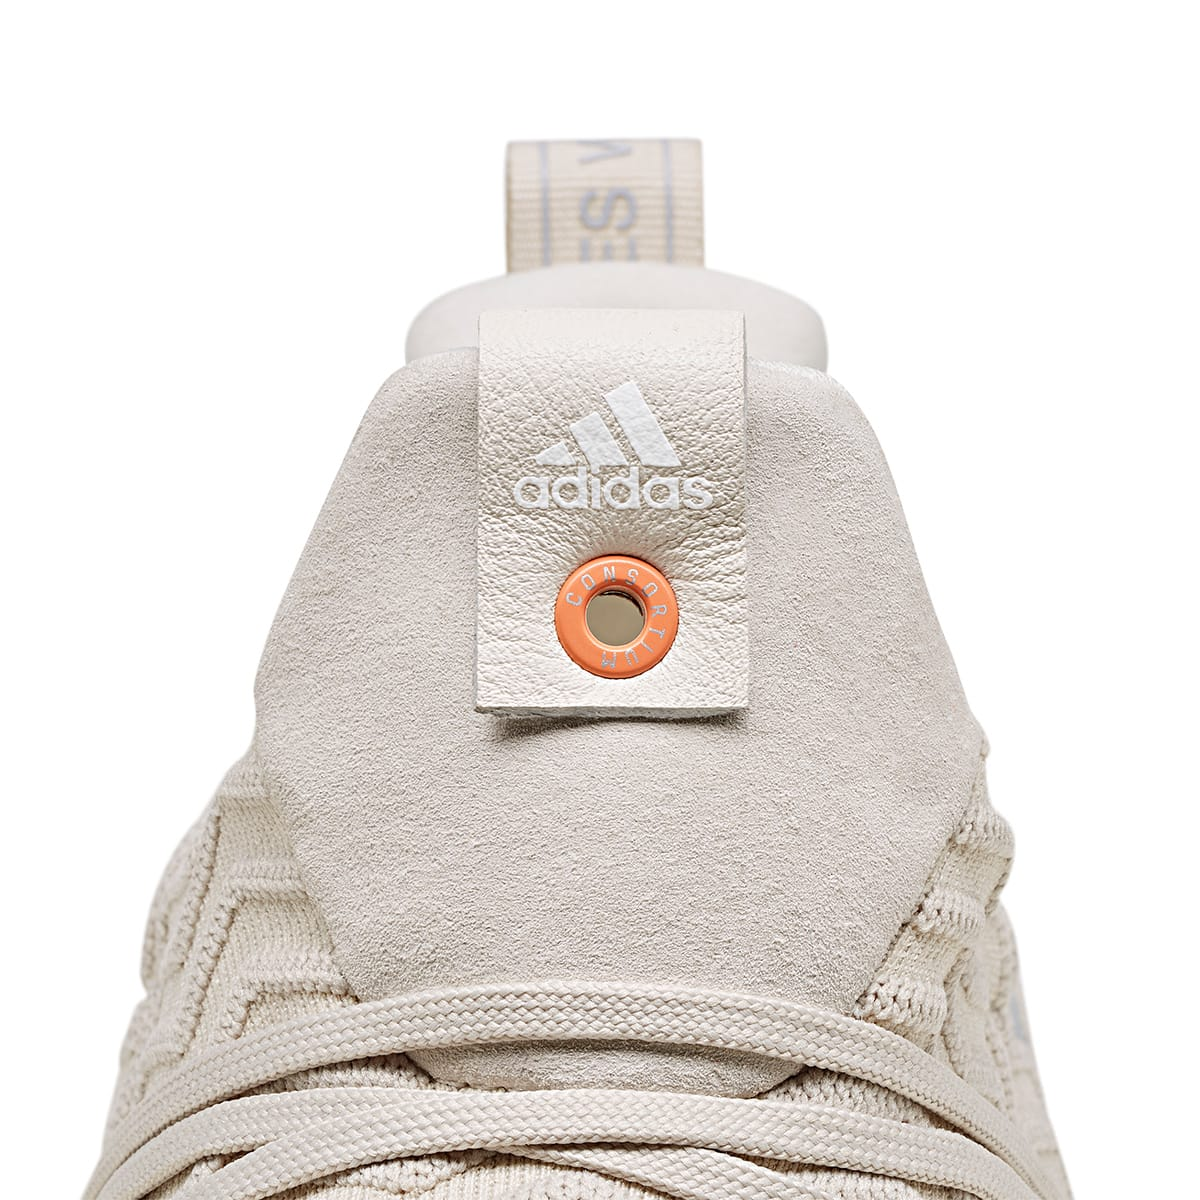 detailed look 5a790 75a4b Adidas Consortium x A Kind Of Guise Ultra Boost (Core White ...